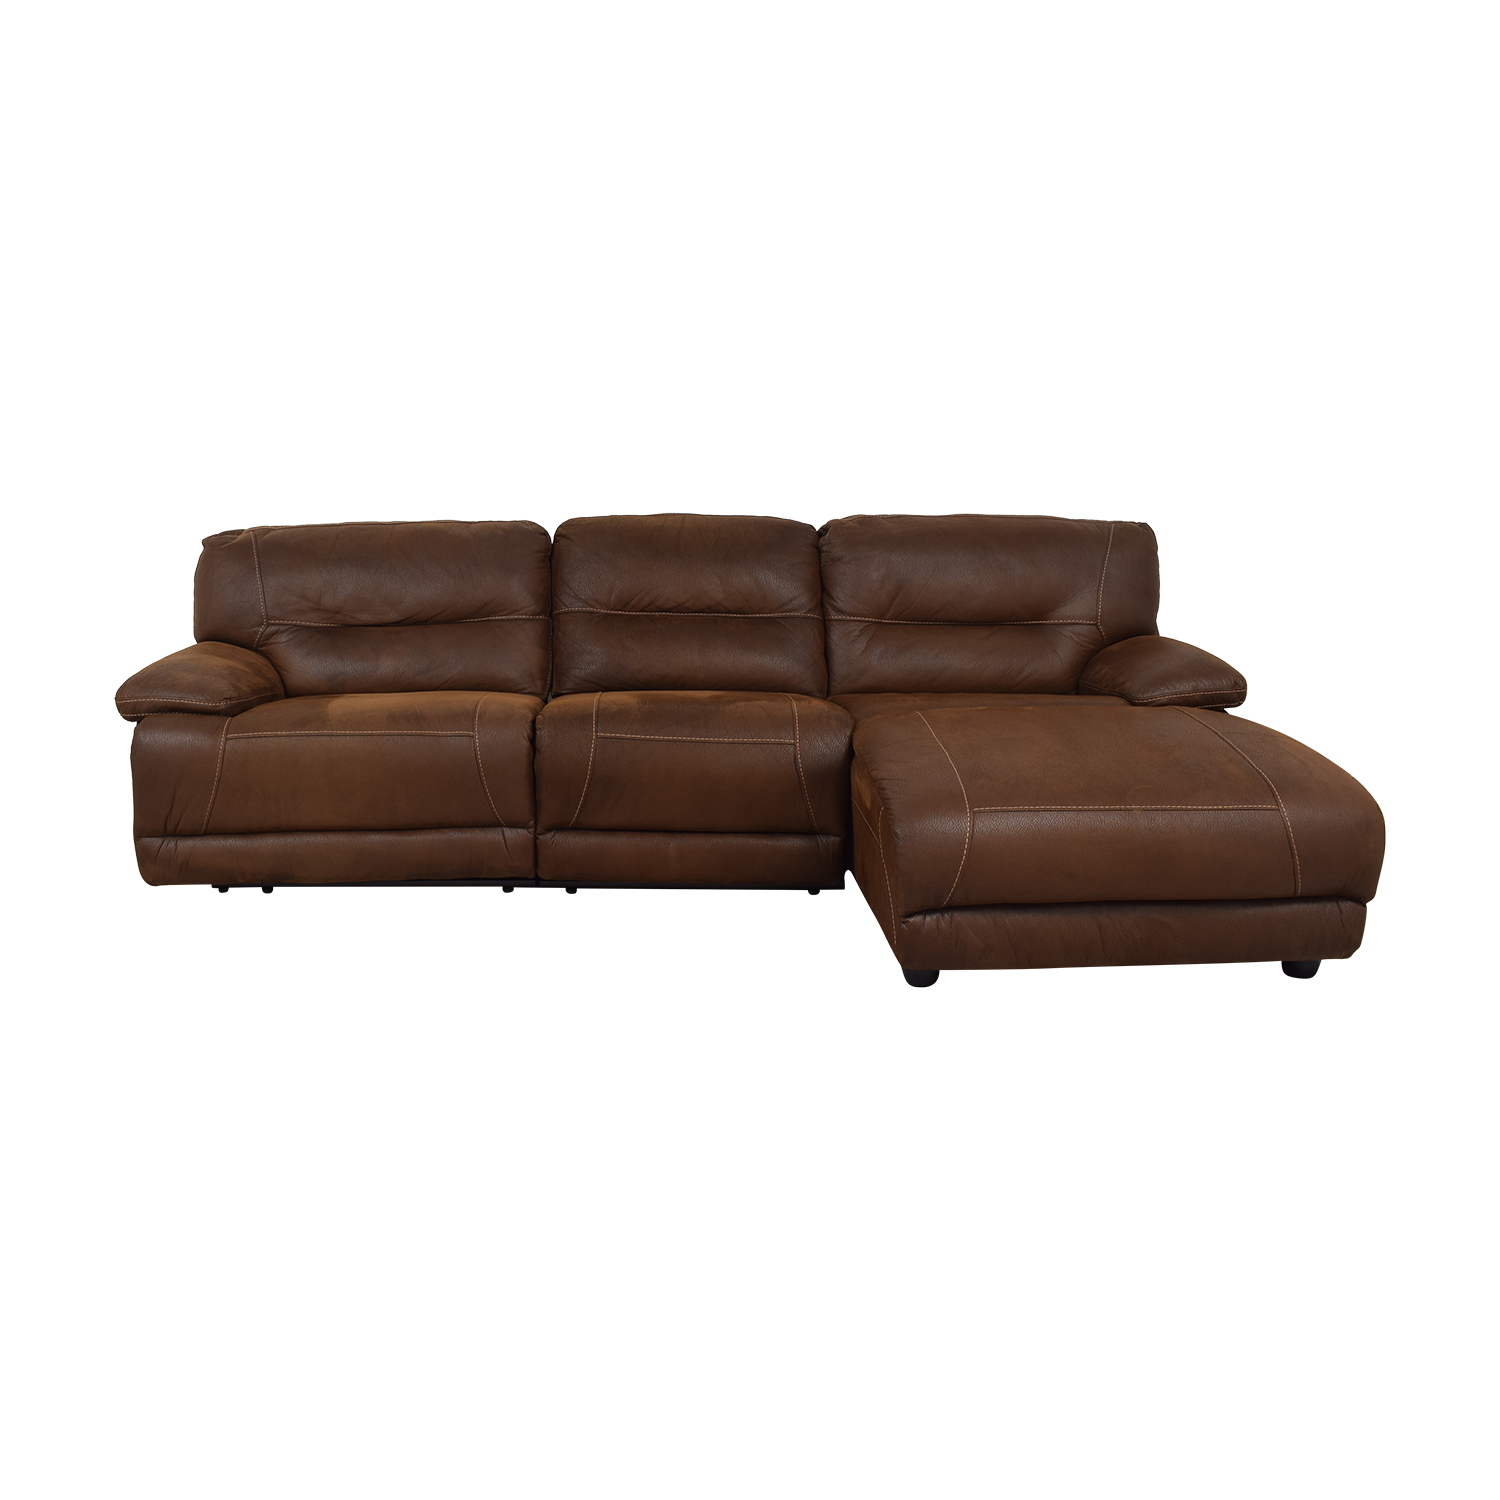 74 Off Bob S Discount Furniture Bob S Discount Furniture Brown Tufted Chaise Sectional Recliner Sofas